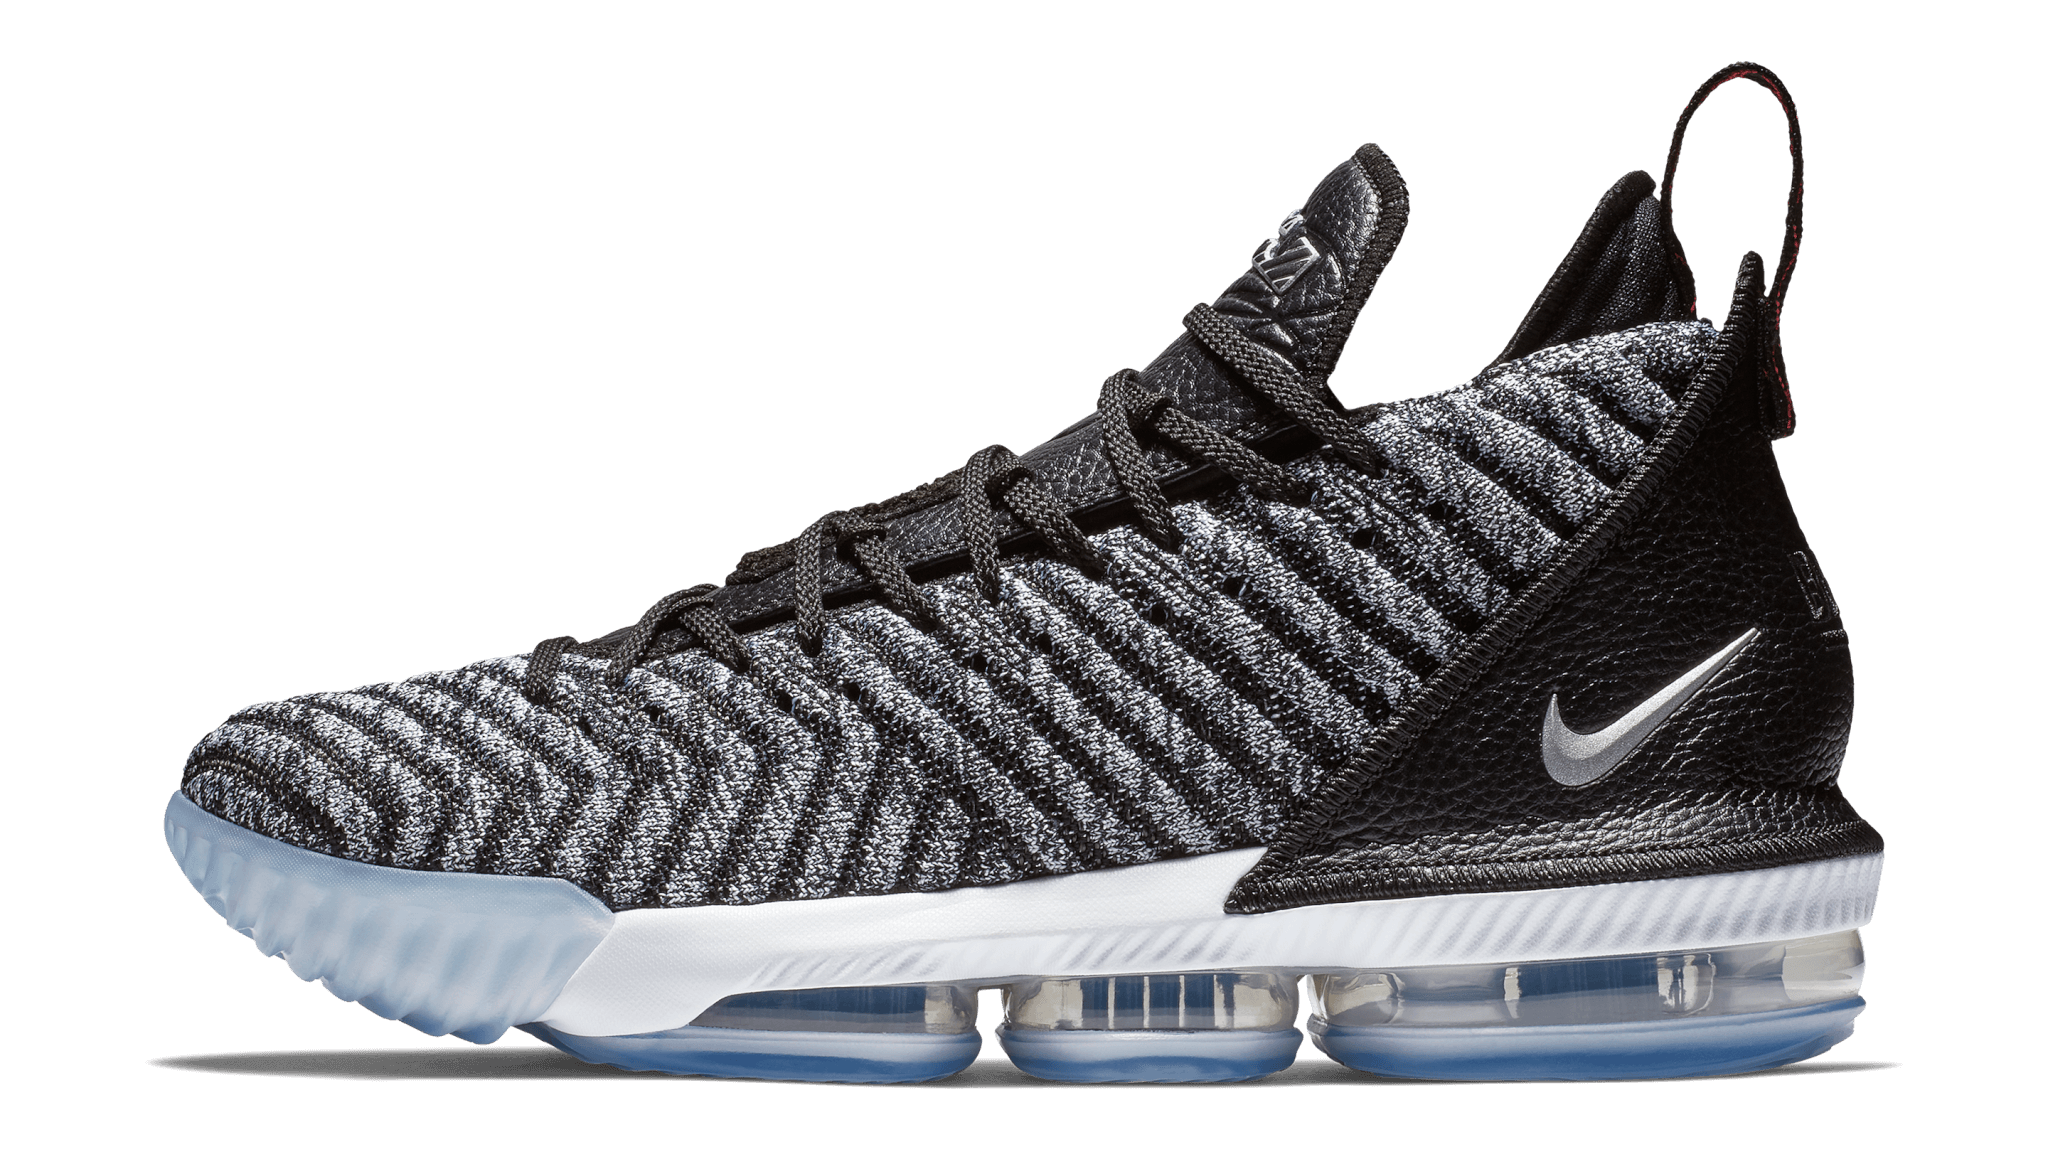 Nike Lebron 16 Performance Review 8 Sneaker Expert Opinions